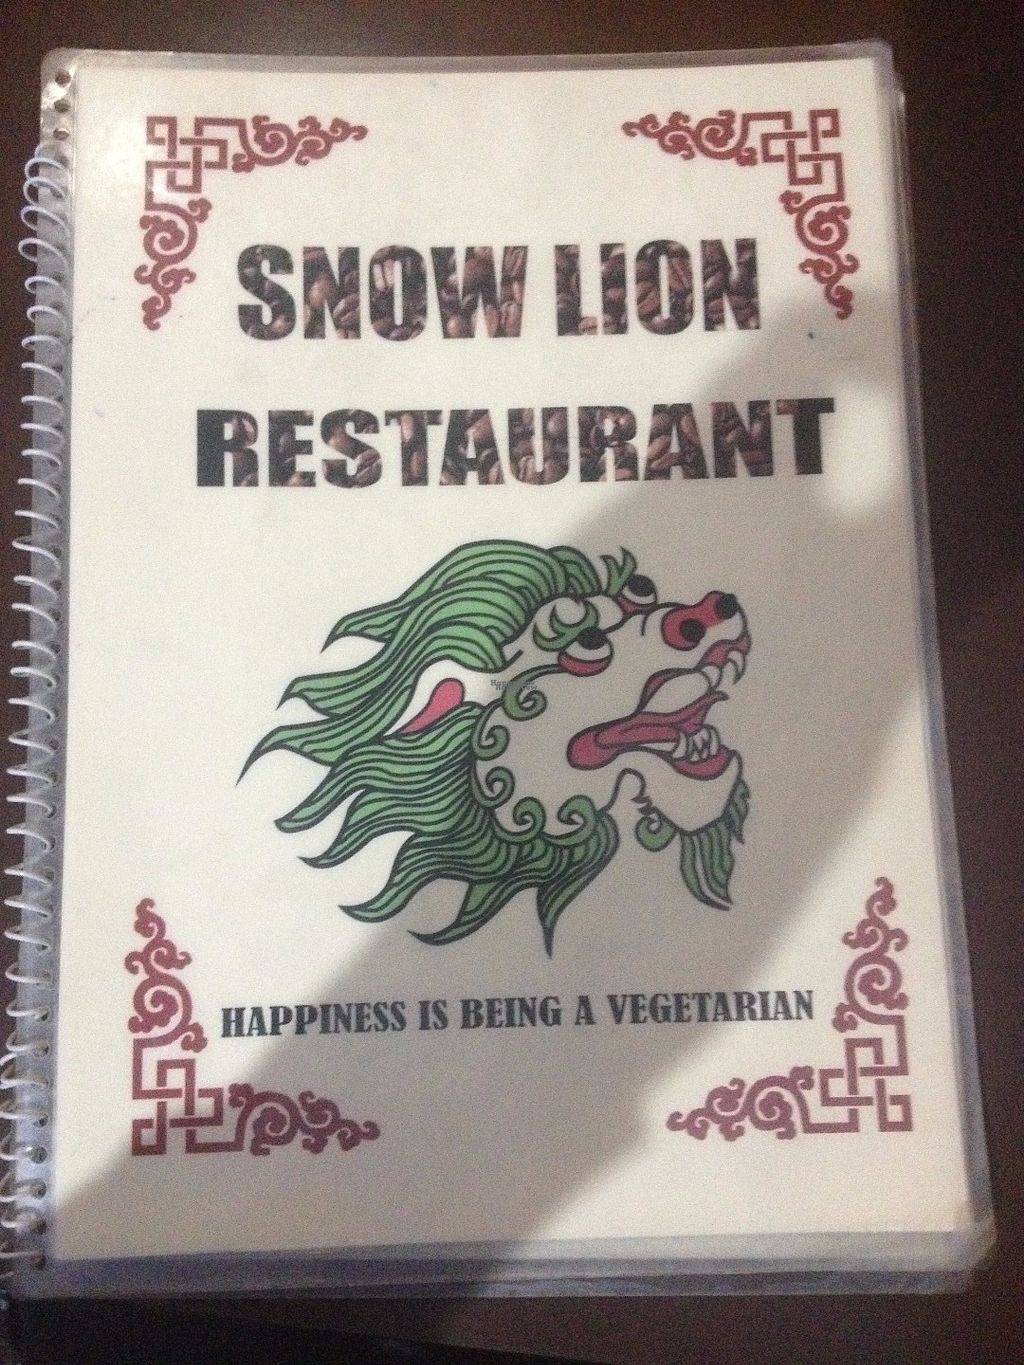 """Photo of Snow Lion Hotel & Veg Restaurant  by <a href=""""/members/profile/vegan_ryan"""">vegan_ryan</a> <br/>Menu cover <br/> October 10, 2016  - <a href='/contact/abuse/image/81272/181182'>Report</a>"""